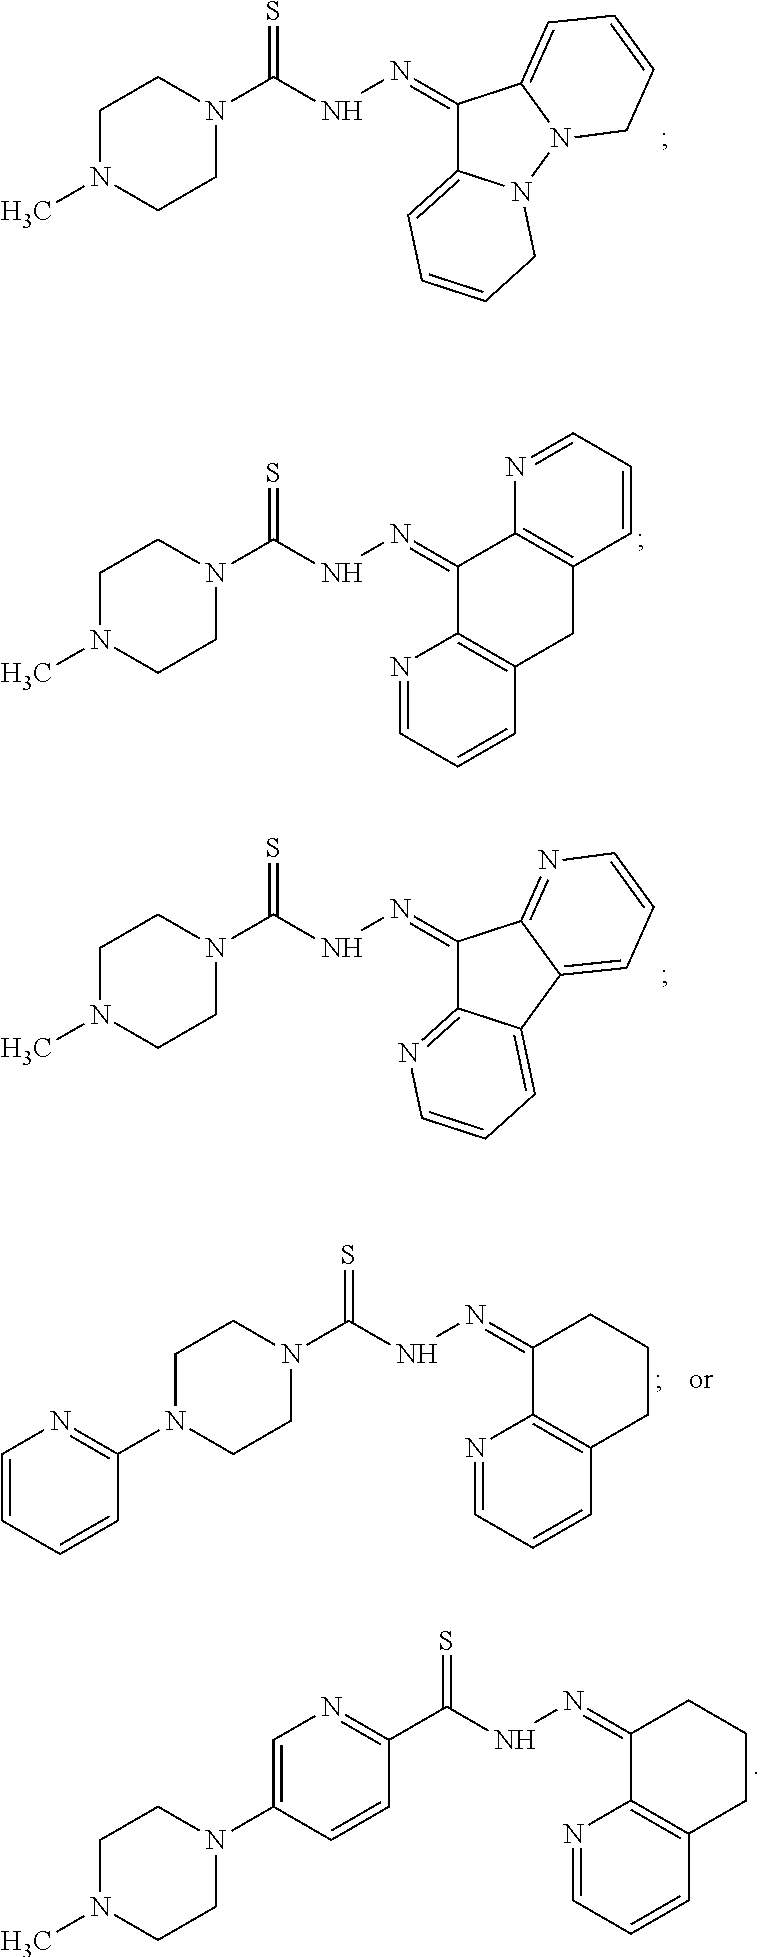 Us8138191b2 Inhibitor Compounds And Cancer Treatment Methods Wiring Diagram Bolens 1053 Figure Us08138191 20120320 C00013